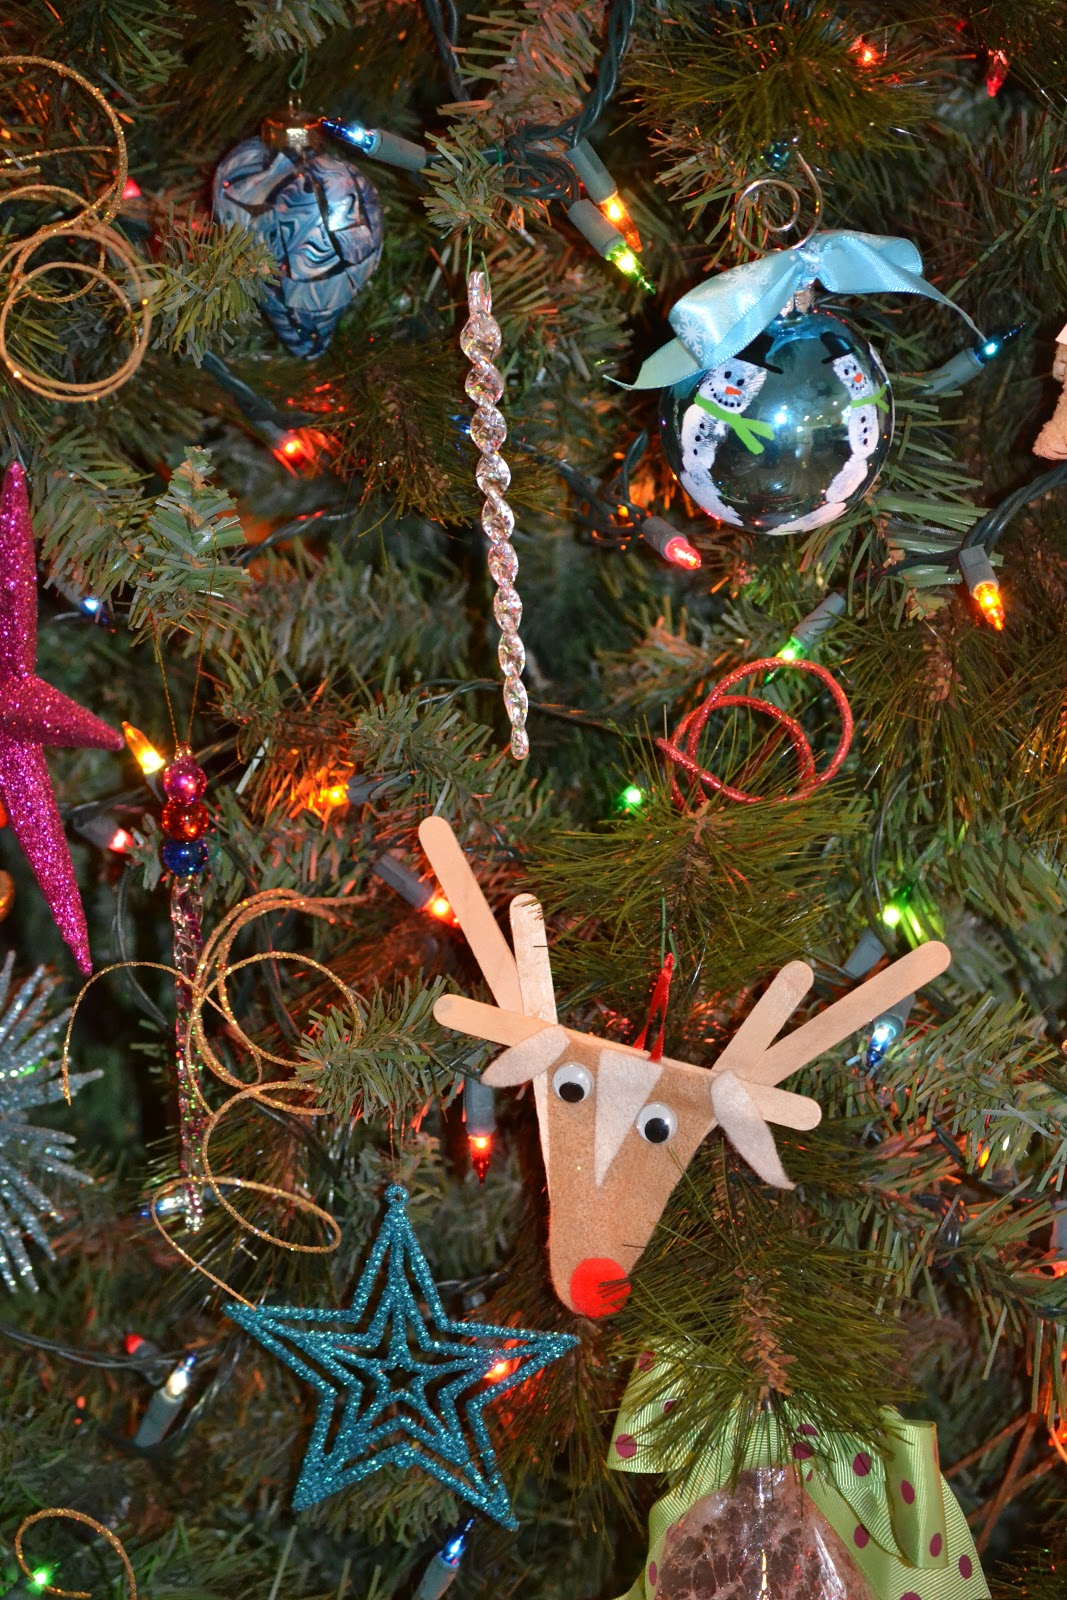 ... : How to Have a Pretty Christmas Tree Even When the Kids Decorate It